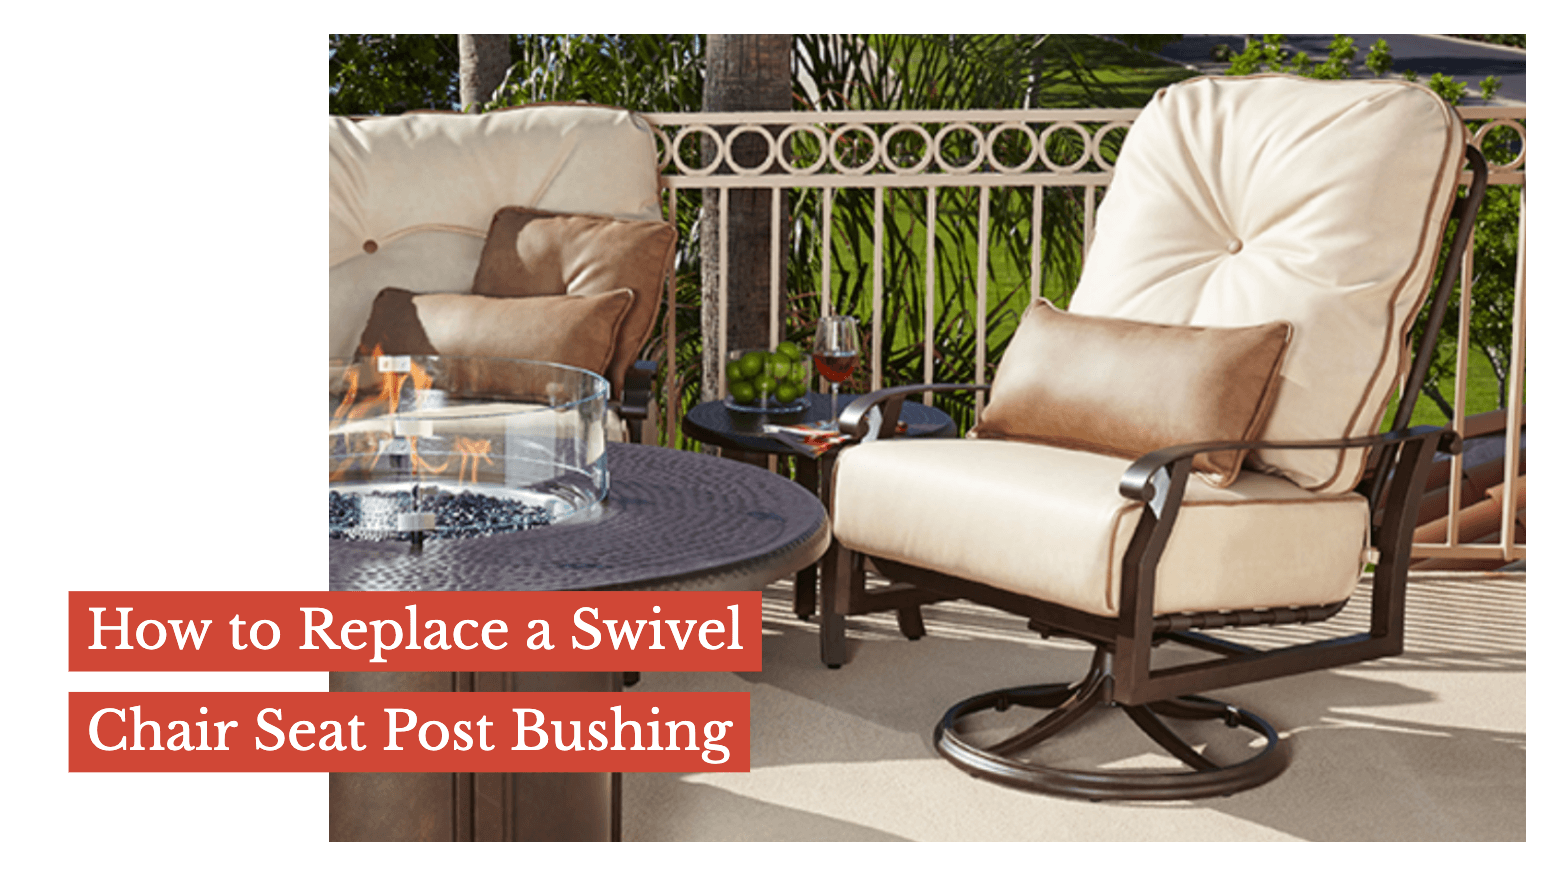 How to Replace a Swivel Chair Seat Post Bushing